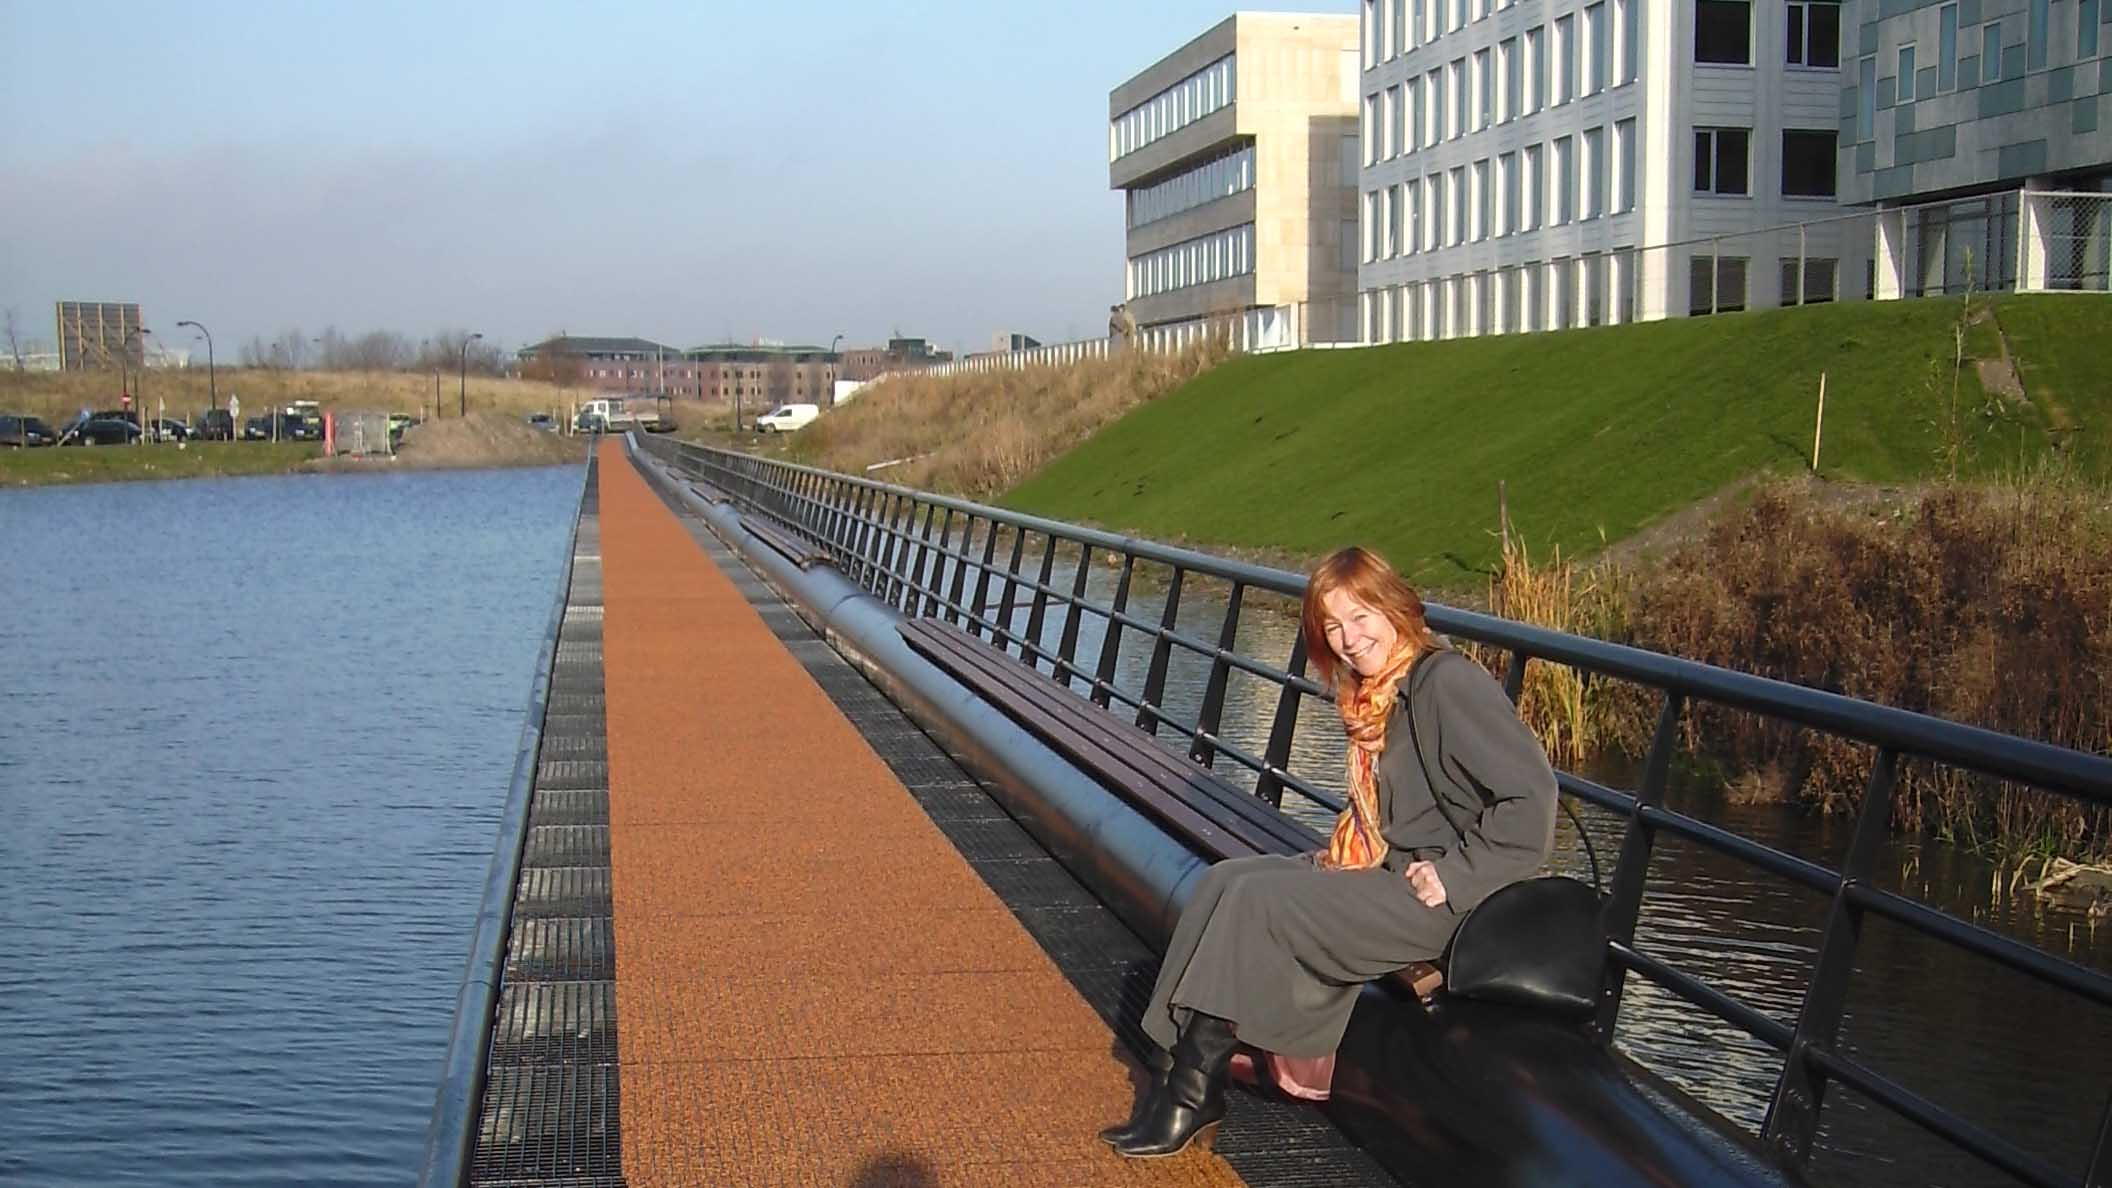 boardwalk brainpark capelle ad ijssel architect marja haring